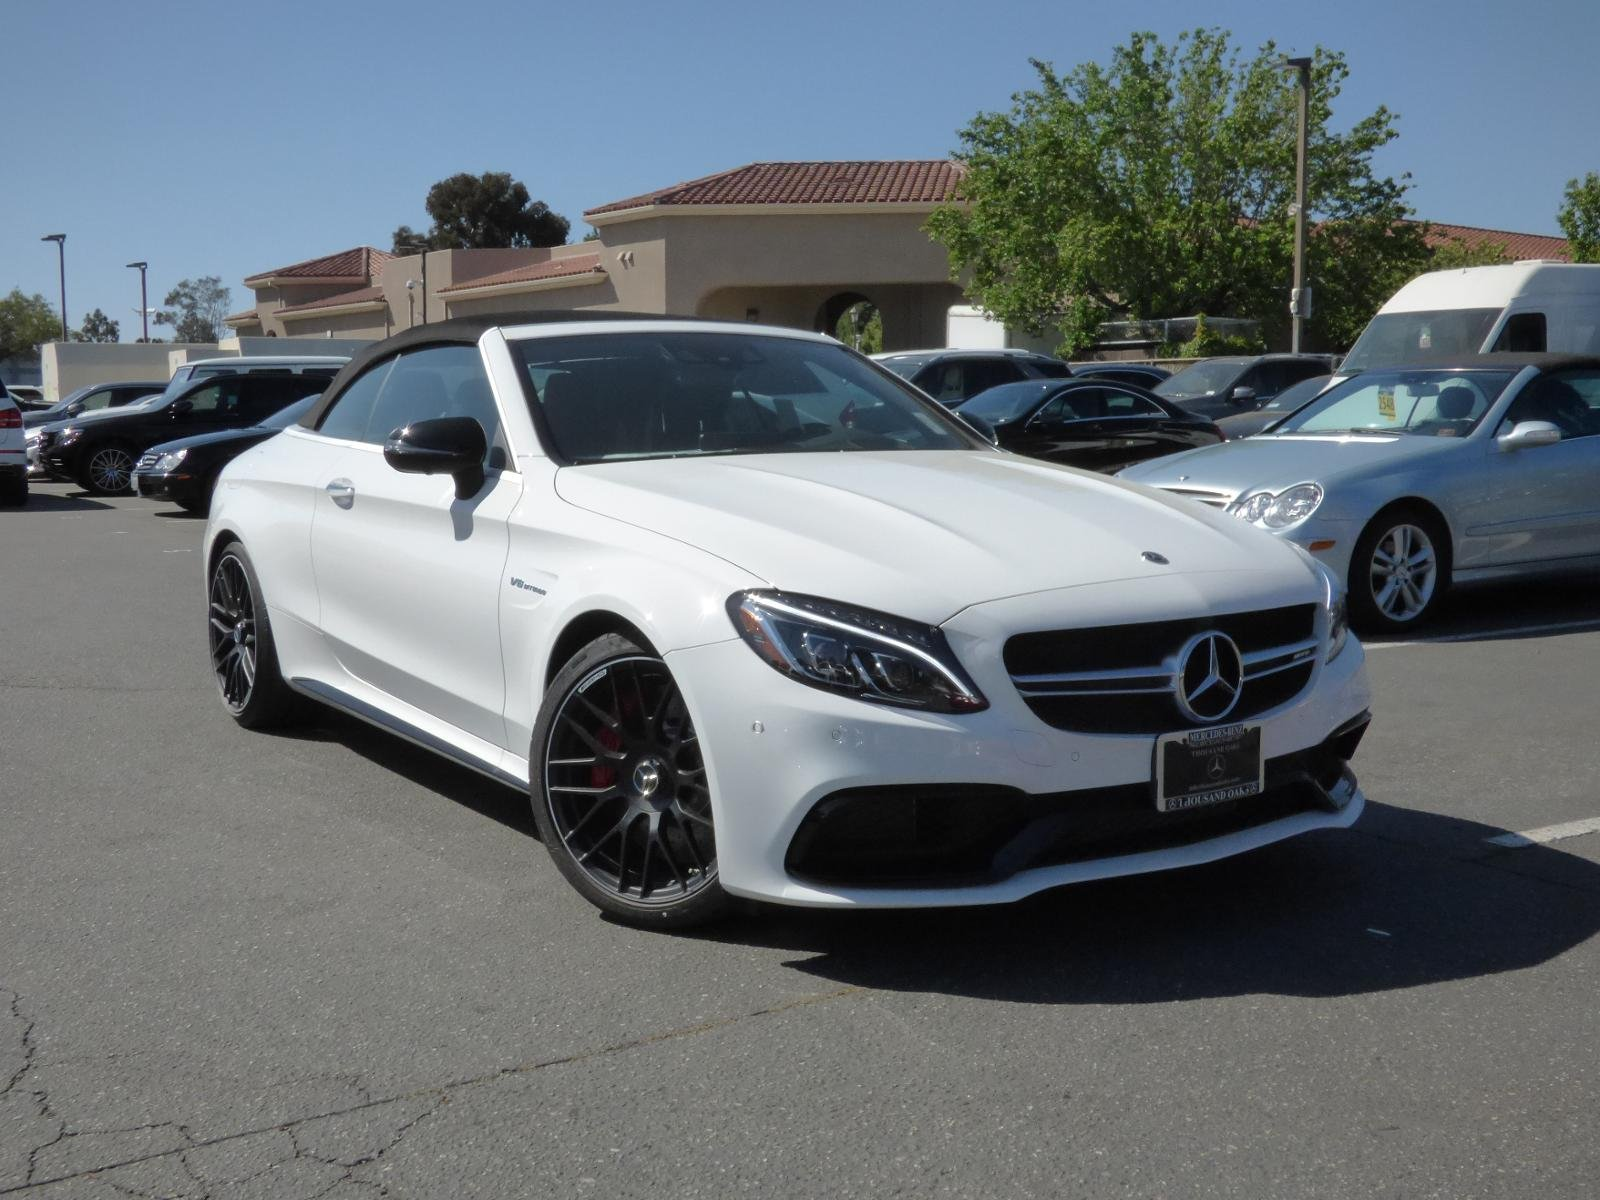 New 2018 Mercedes Benz C Class AMG C 63 S CABRIOLET in Thousand